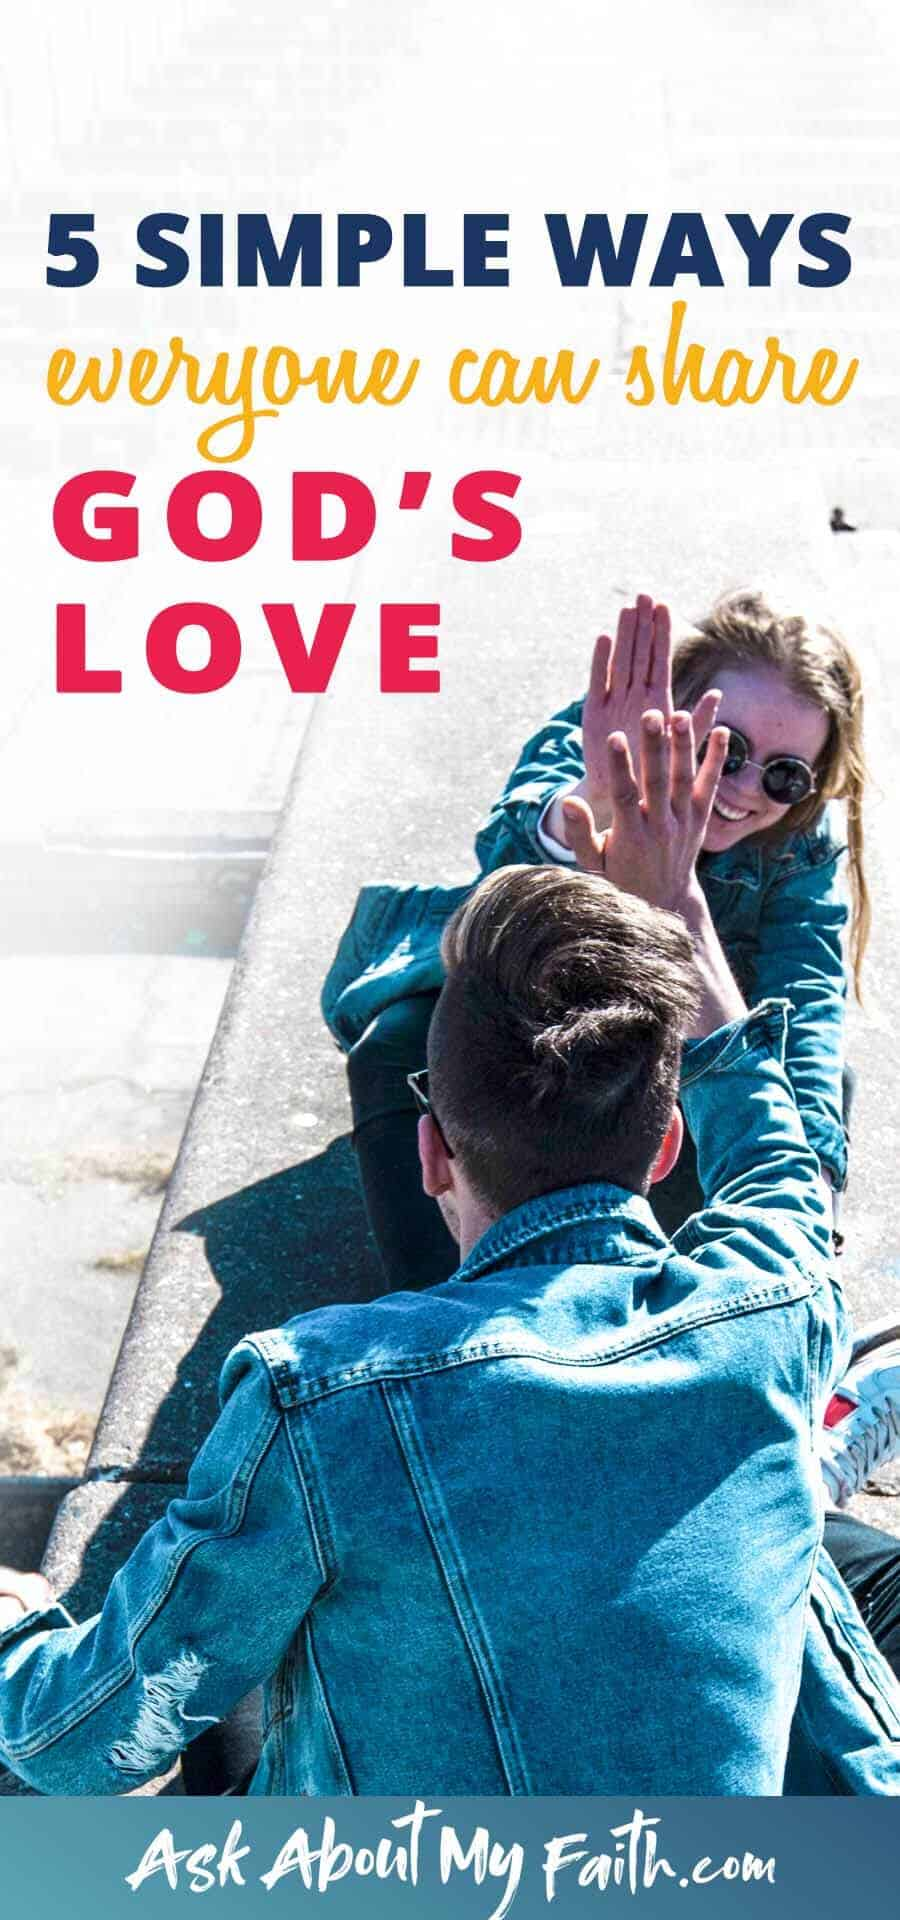 5 Simple Ways Everyone Can Show God's Love to Others | Christian Faith Resources | Share Your Faith